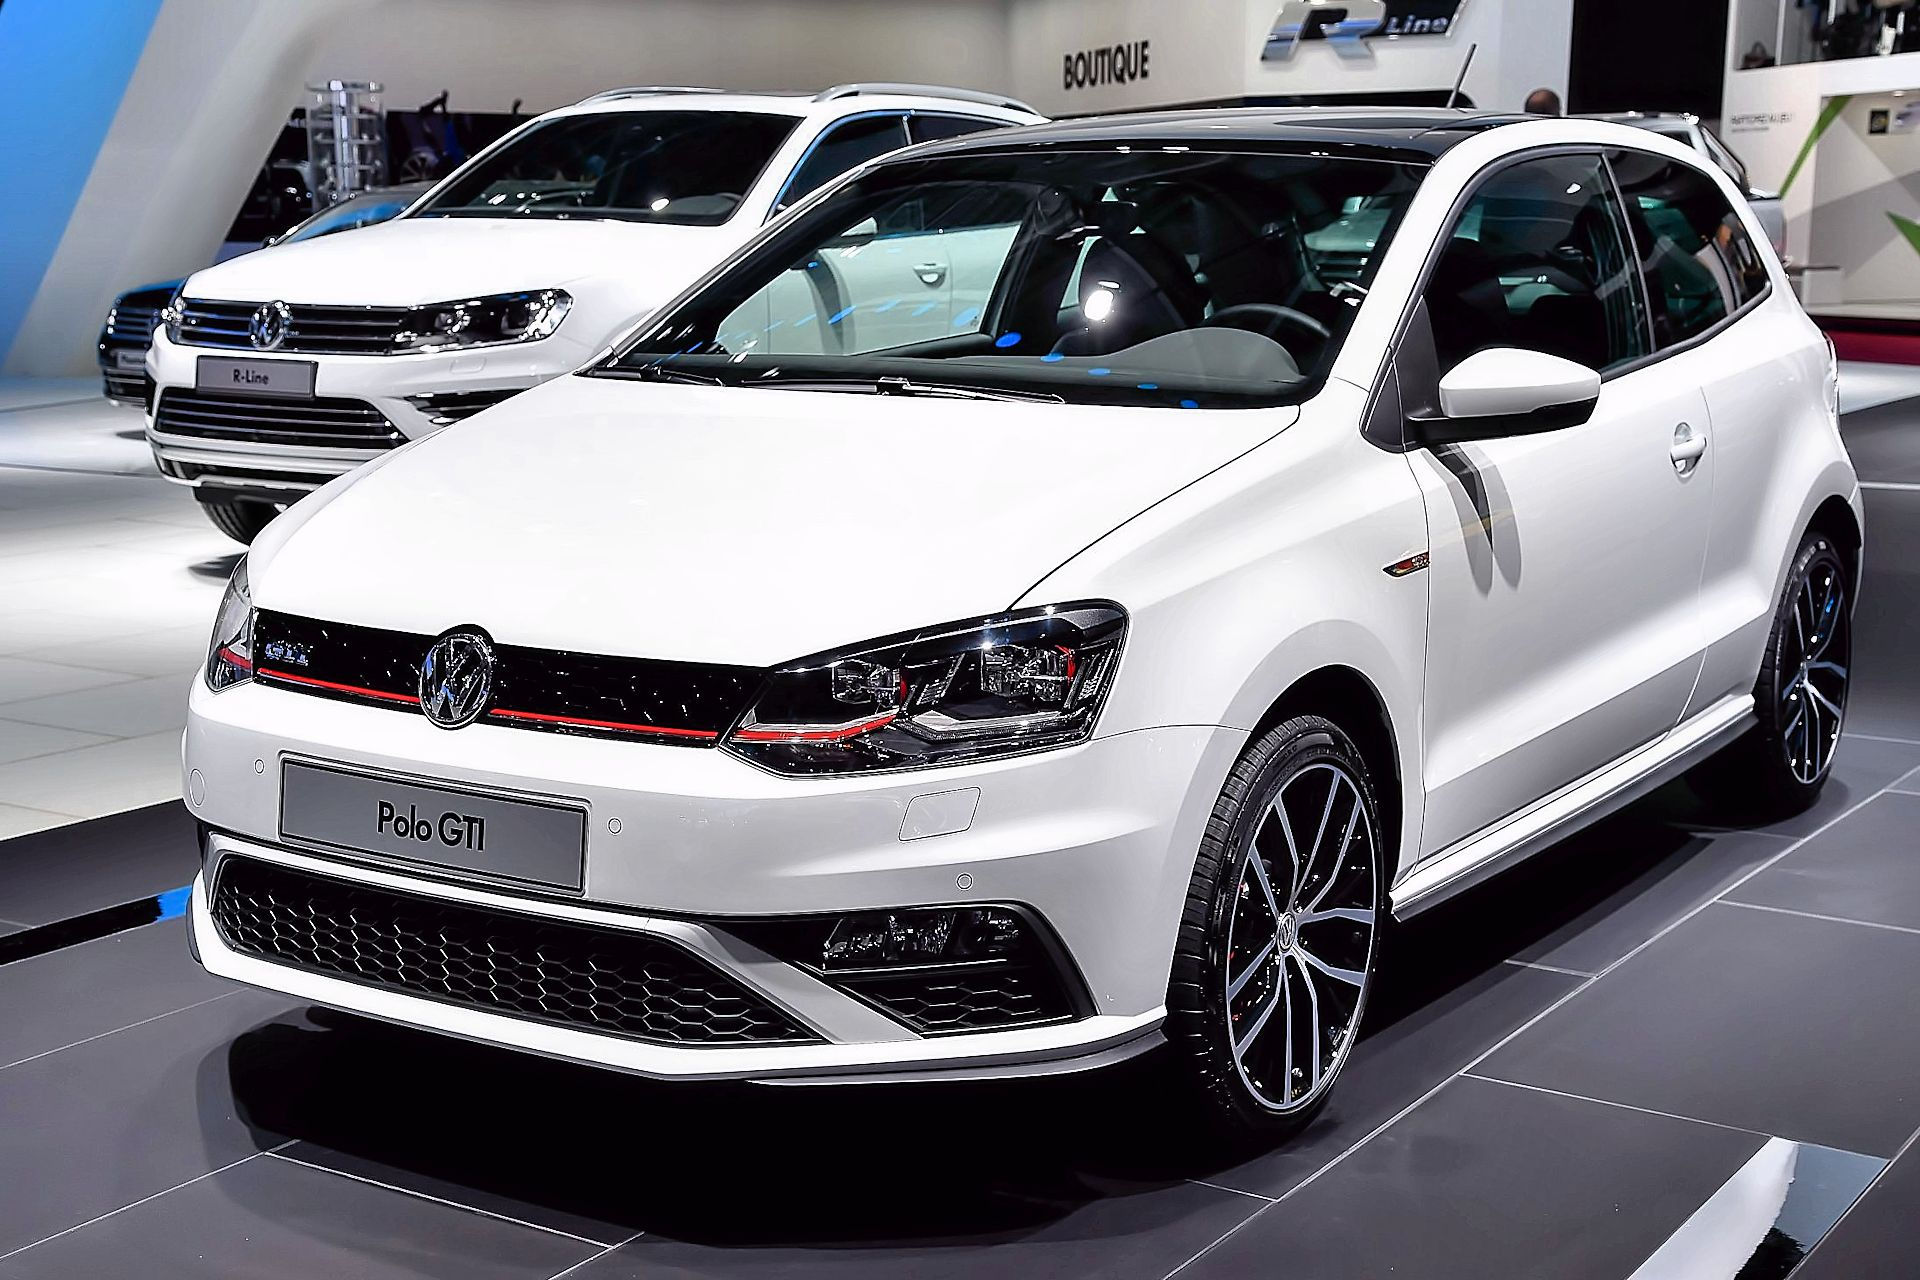 Volkswagen Polo GTI at 2014 Paris Motor Show